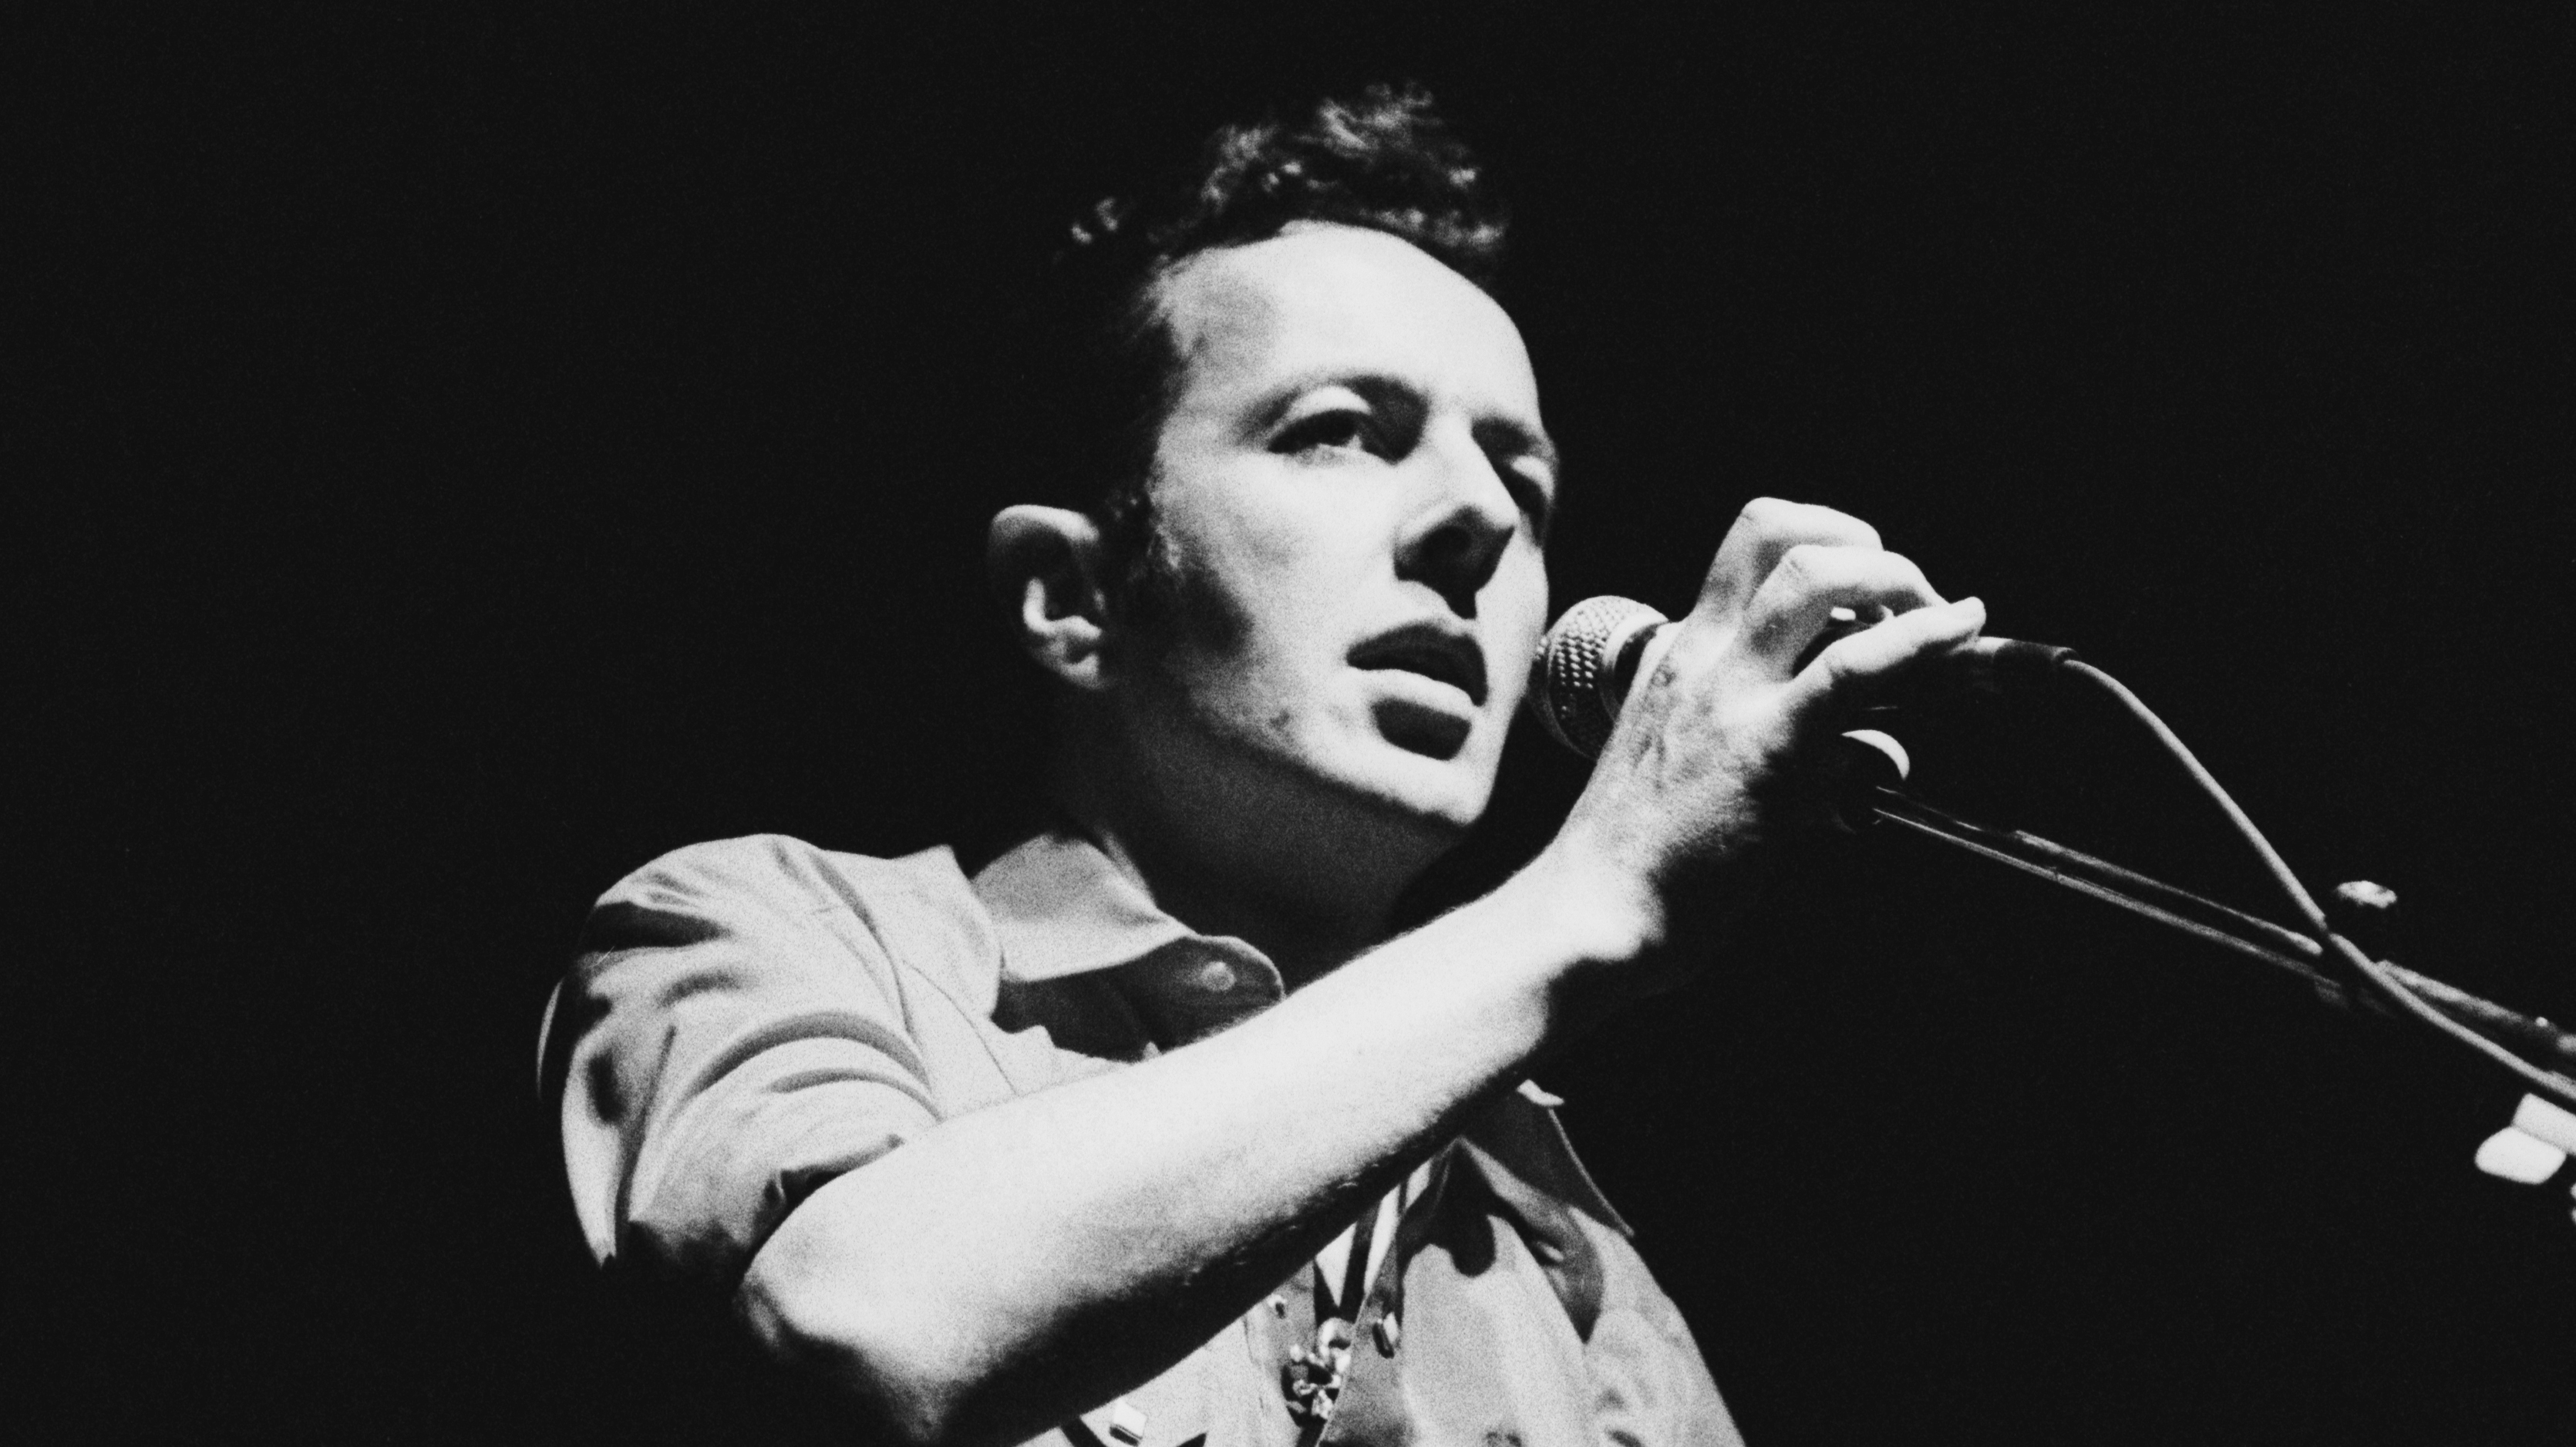 Cool Race Car Wallpaper Joe Strummer S Life After Death Npr